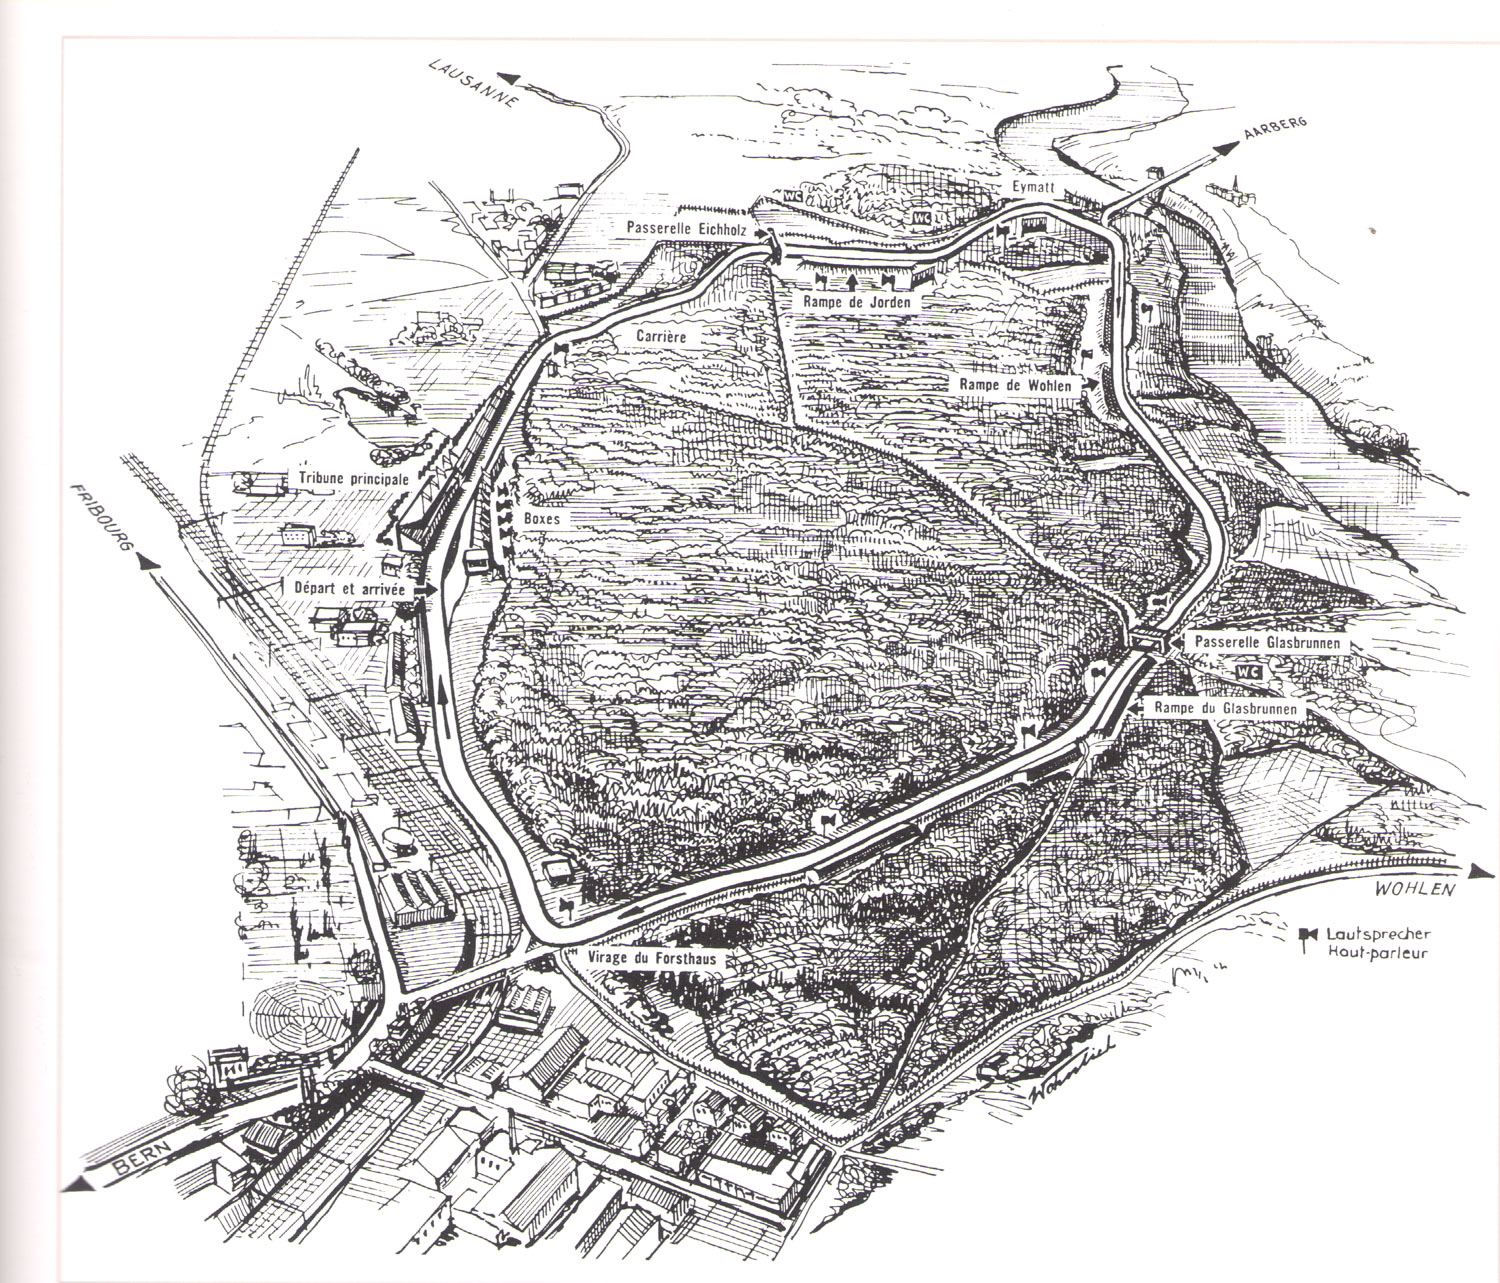 Aerial view of the Grand Prix course from the 1934-1955 reportage